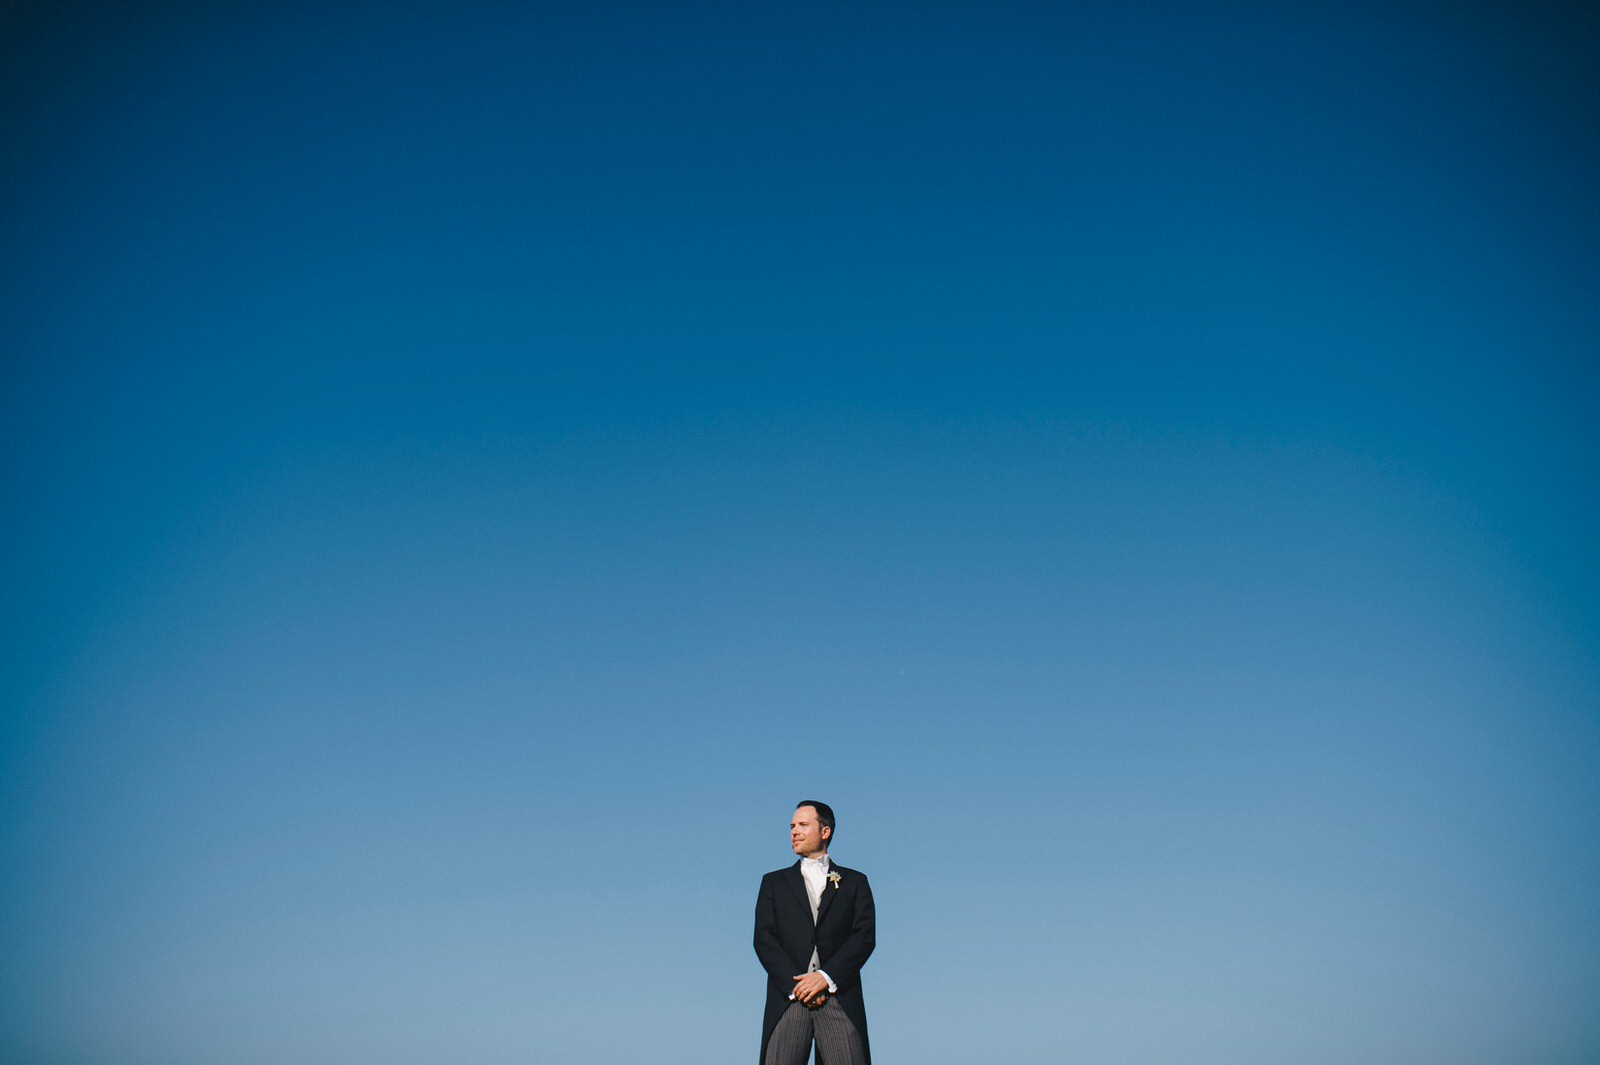 tuscany wedding groom's portrait with the blue sky as backdrop